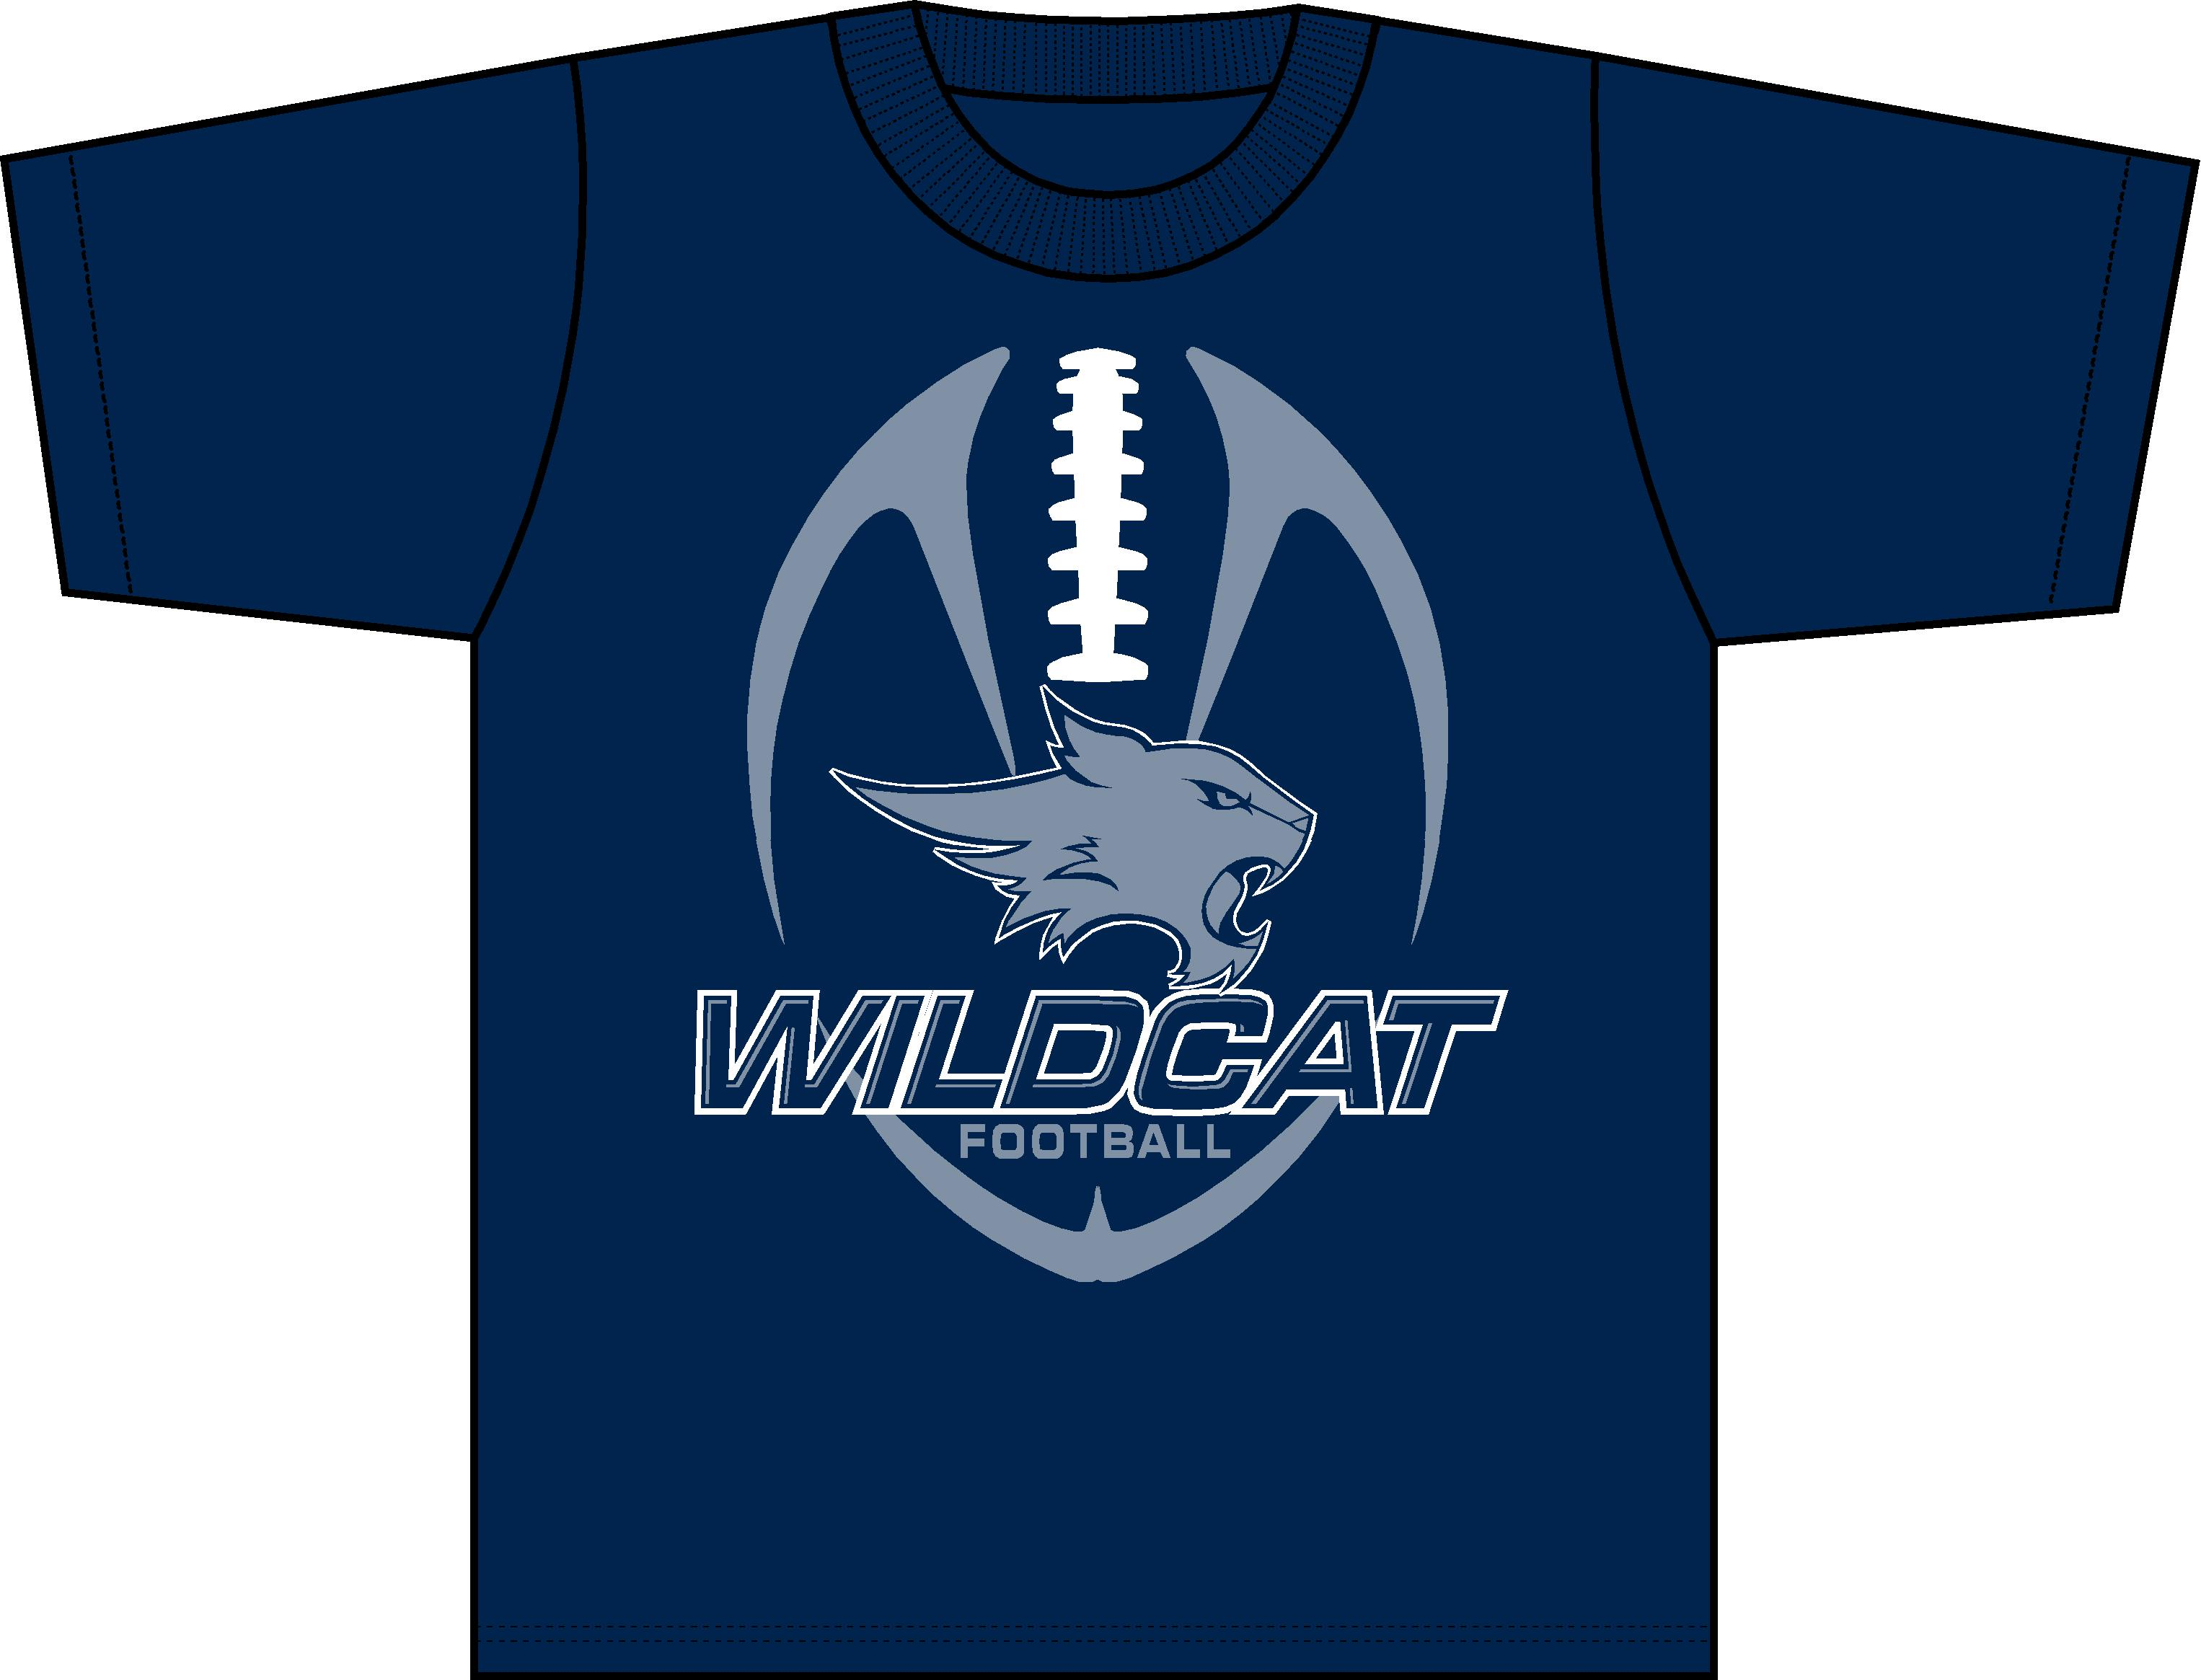 wildcat-football-12.jpg